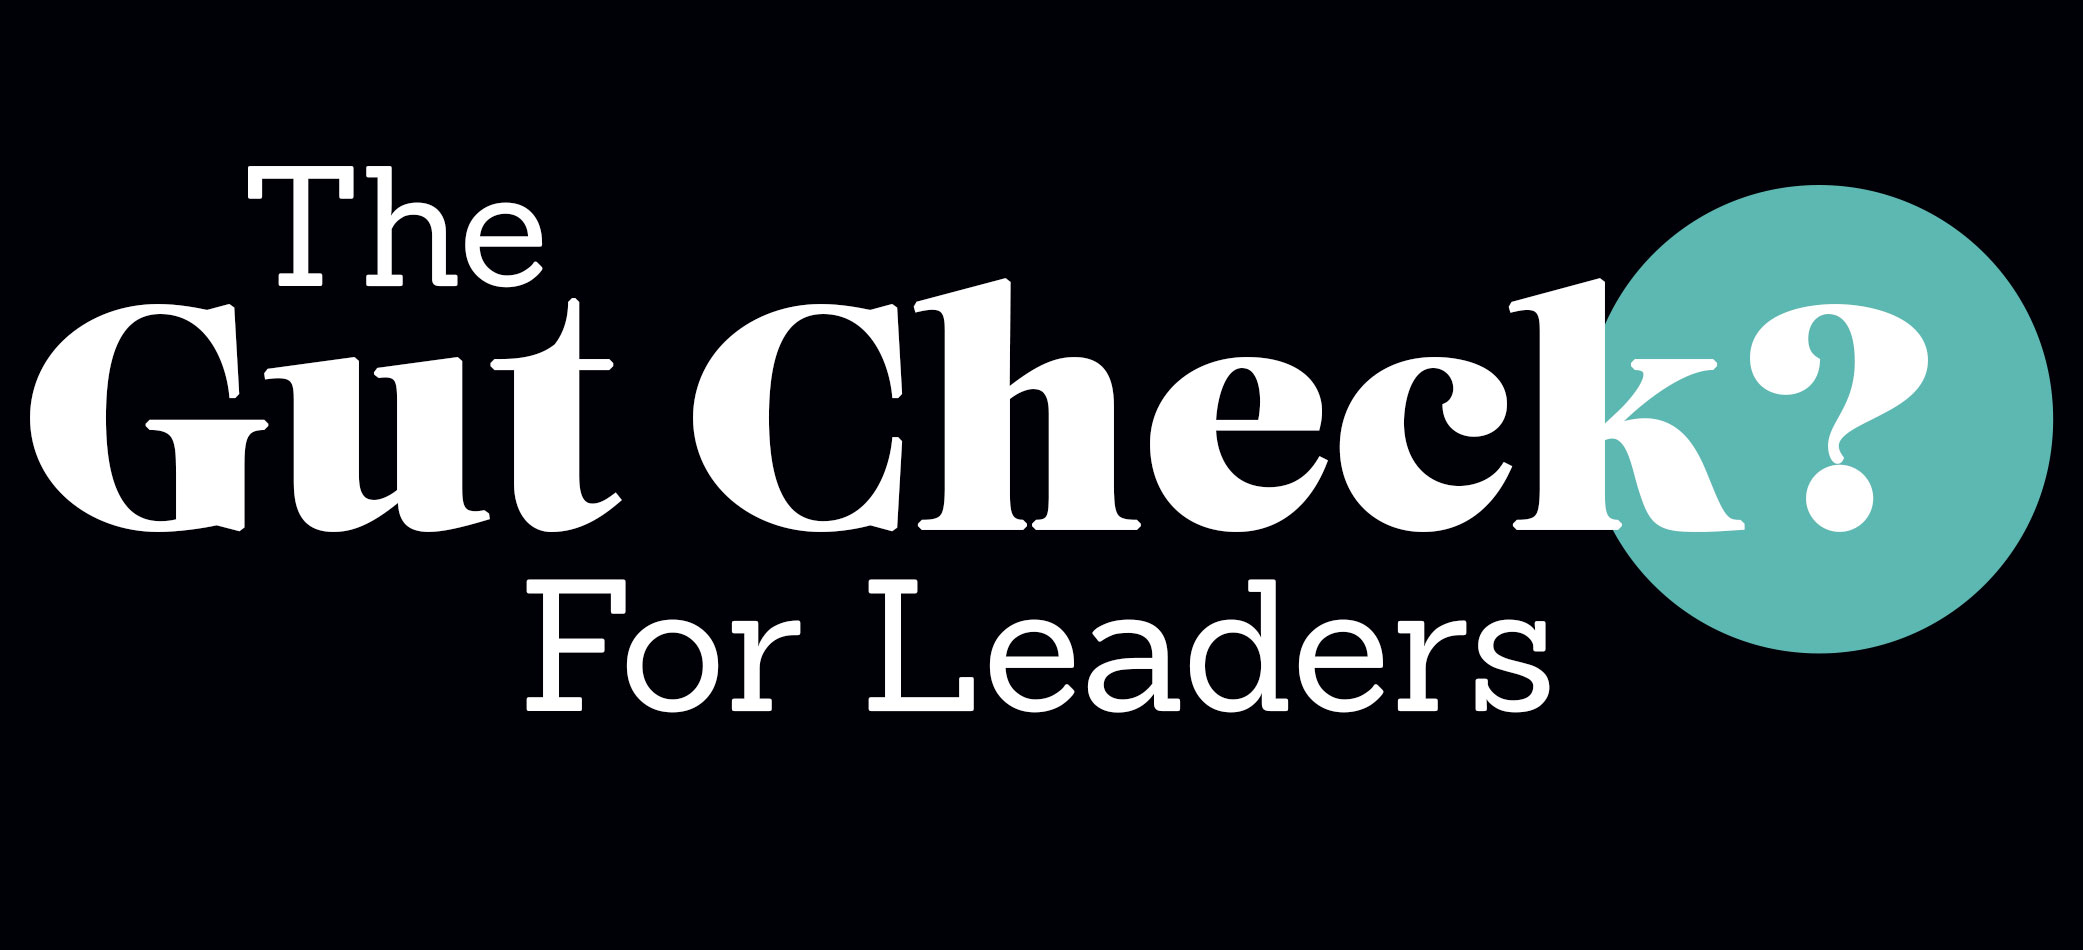 The Gut Check for Leaders